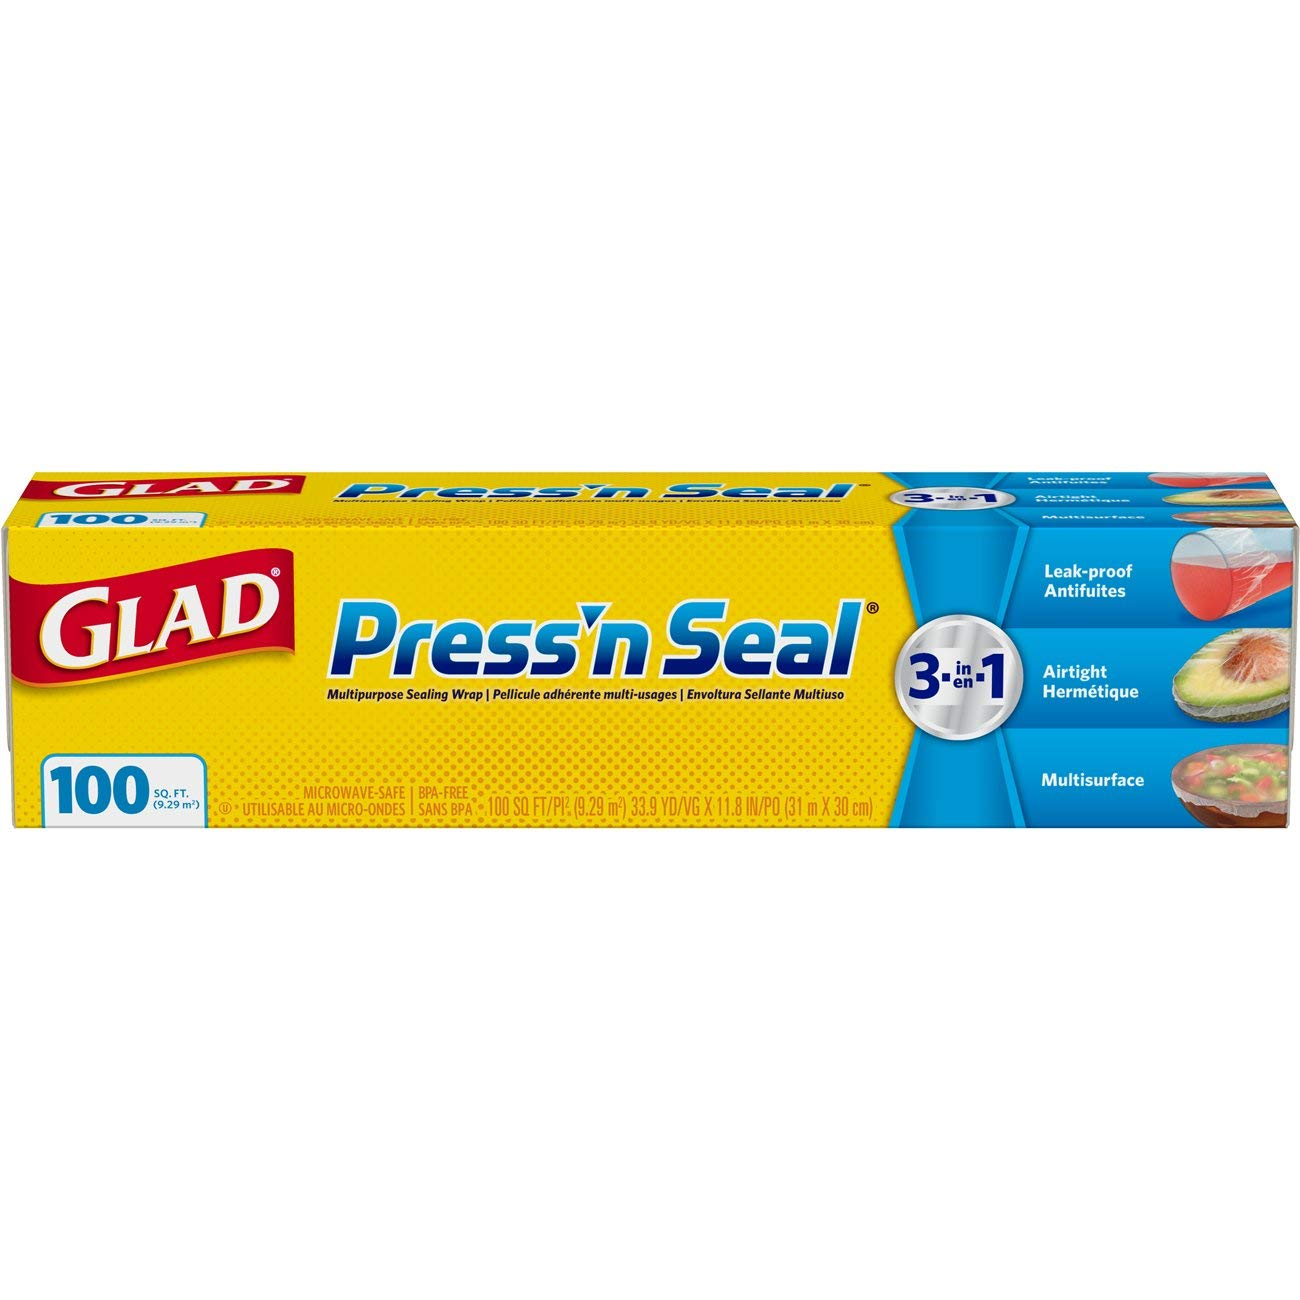 Glad Press'n Seal Plastic Food Wrap - 100 Square Foot Roll - 3 Pack by Glad